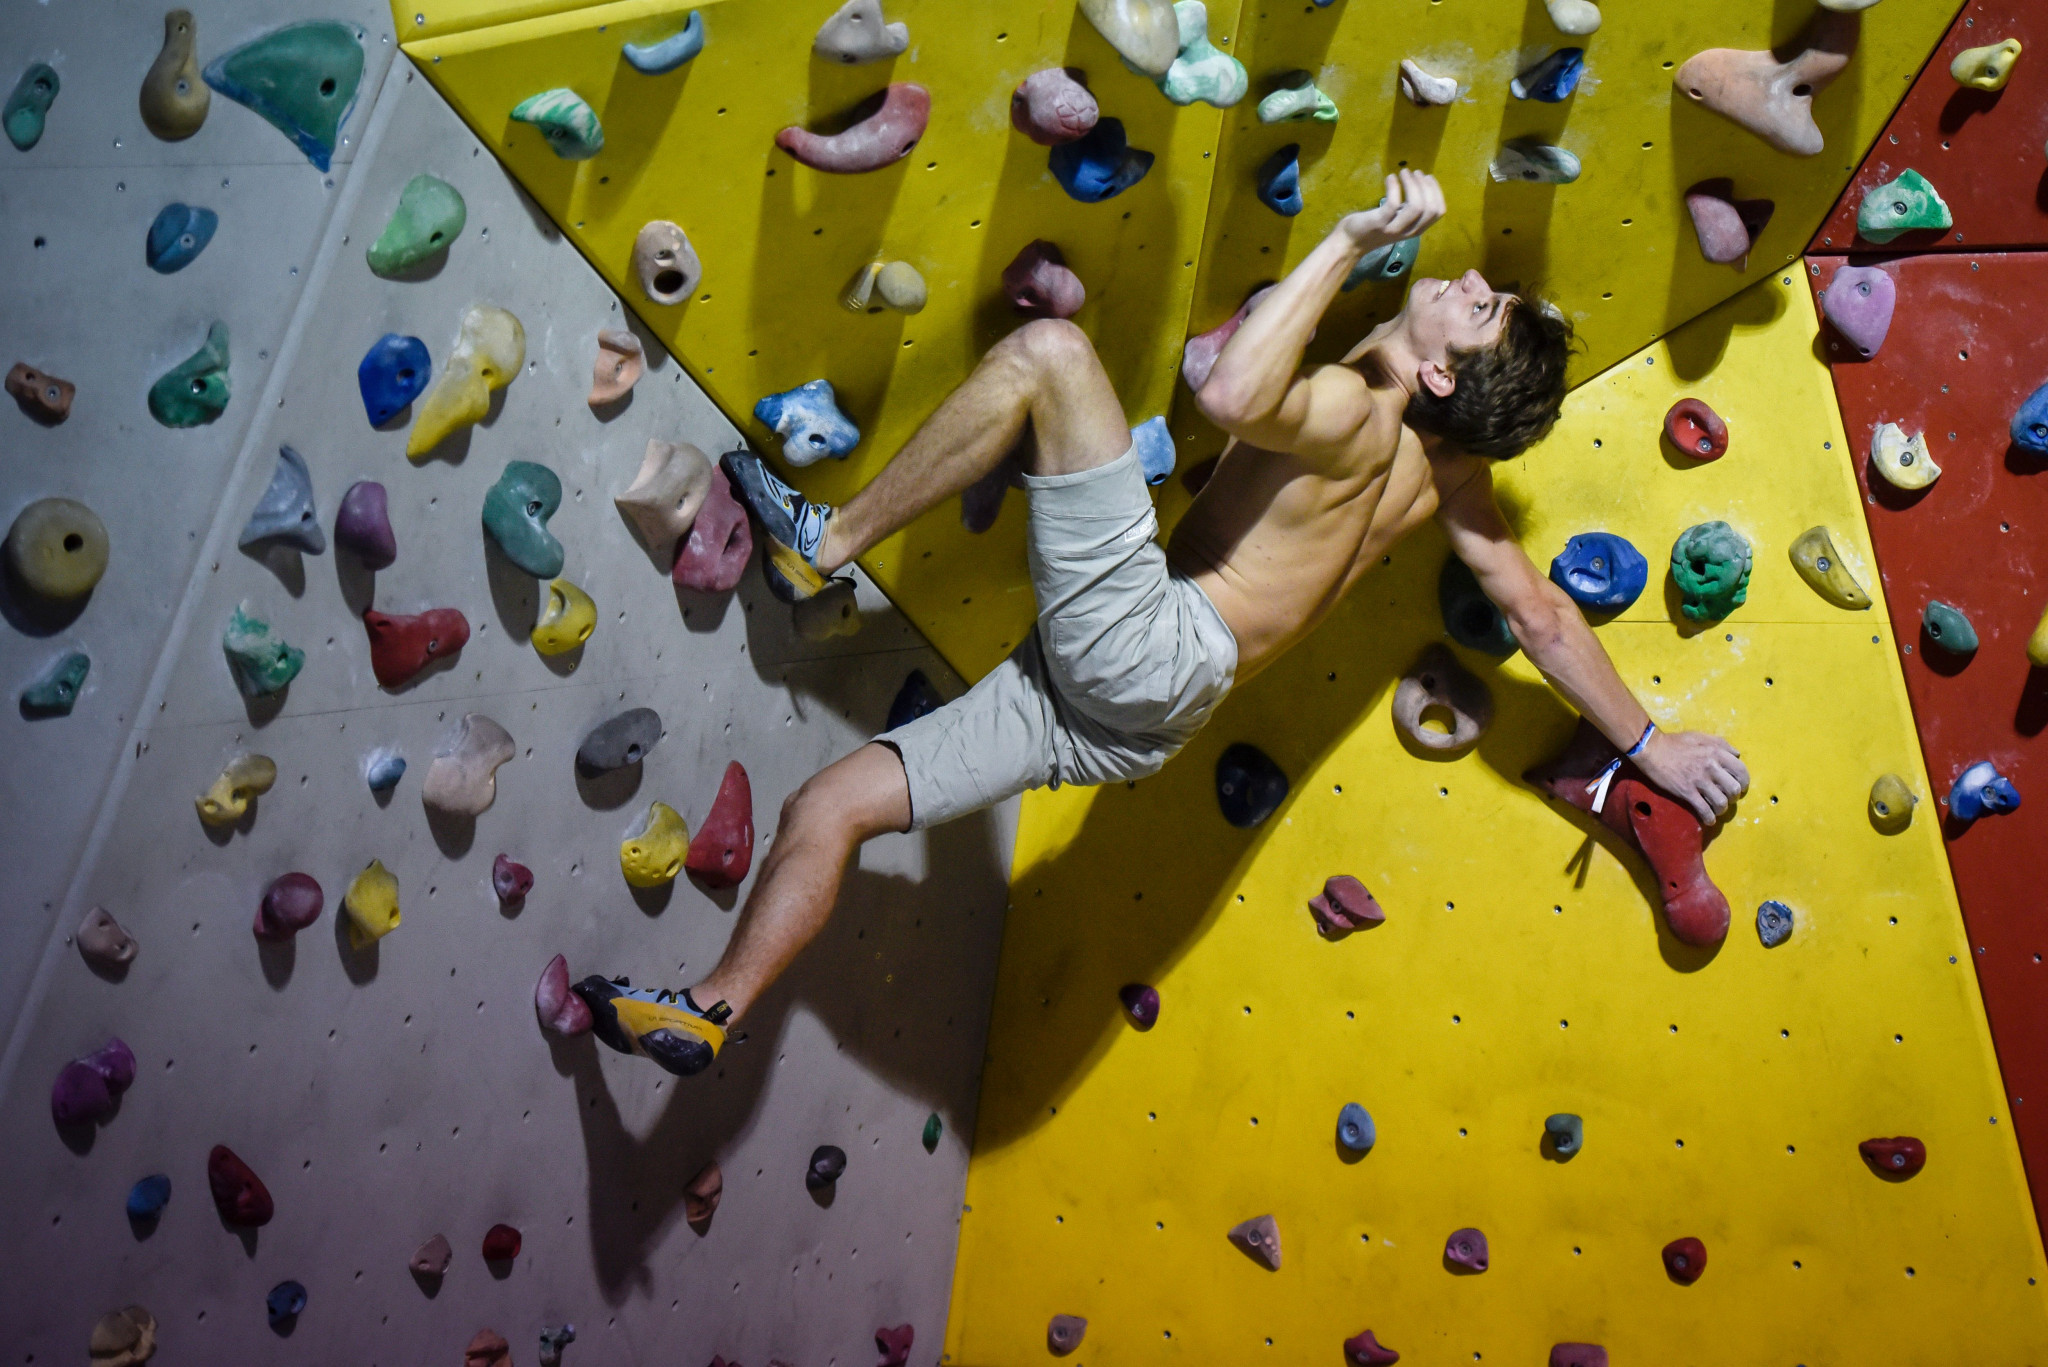 IFSC meet to discuss evolution of climbing before sport's Olympic debut at Tokyo 2020